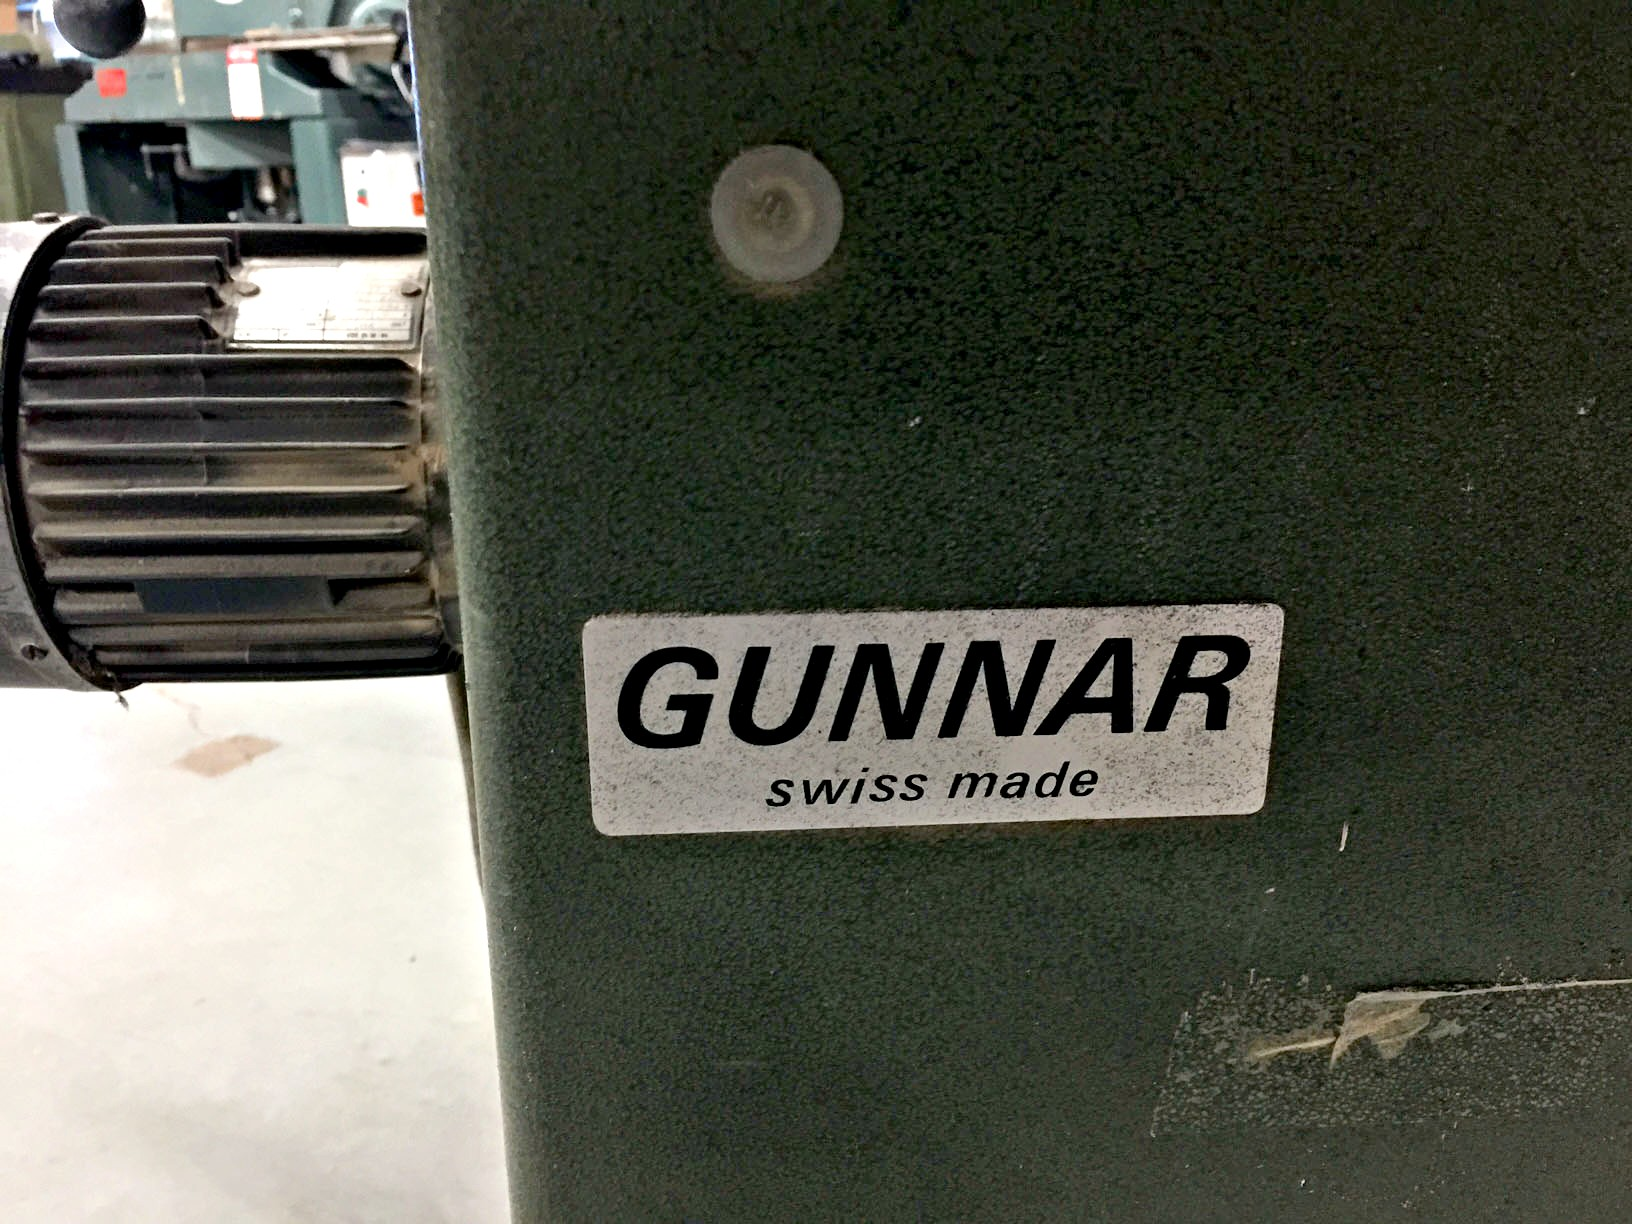 Used gunnar picture framing saw gunnar picture framing saw jeuxipadfo Choice Image